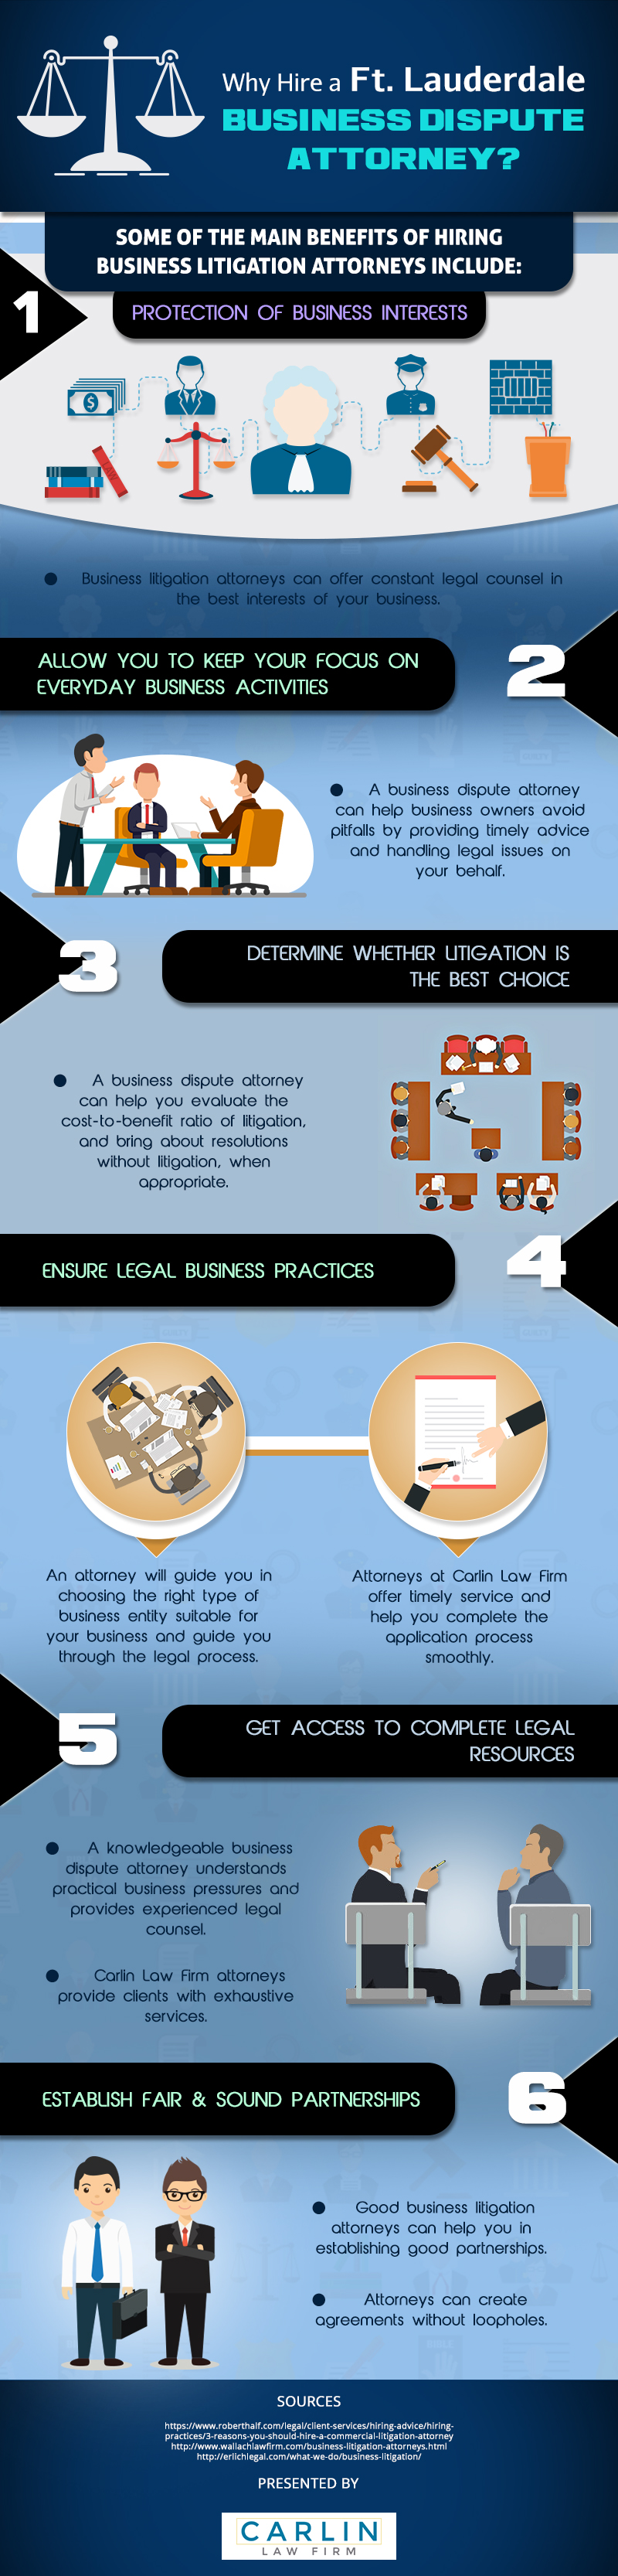 Infographic: Reasons to Hire a Ft. Lauderdale Business Dispute Attorney | Carlin Law Firm